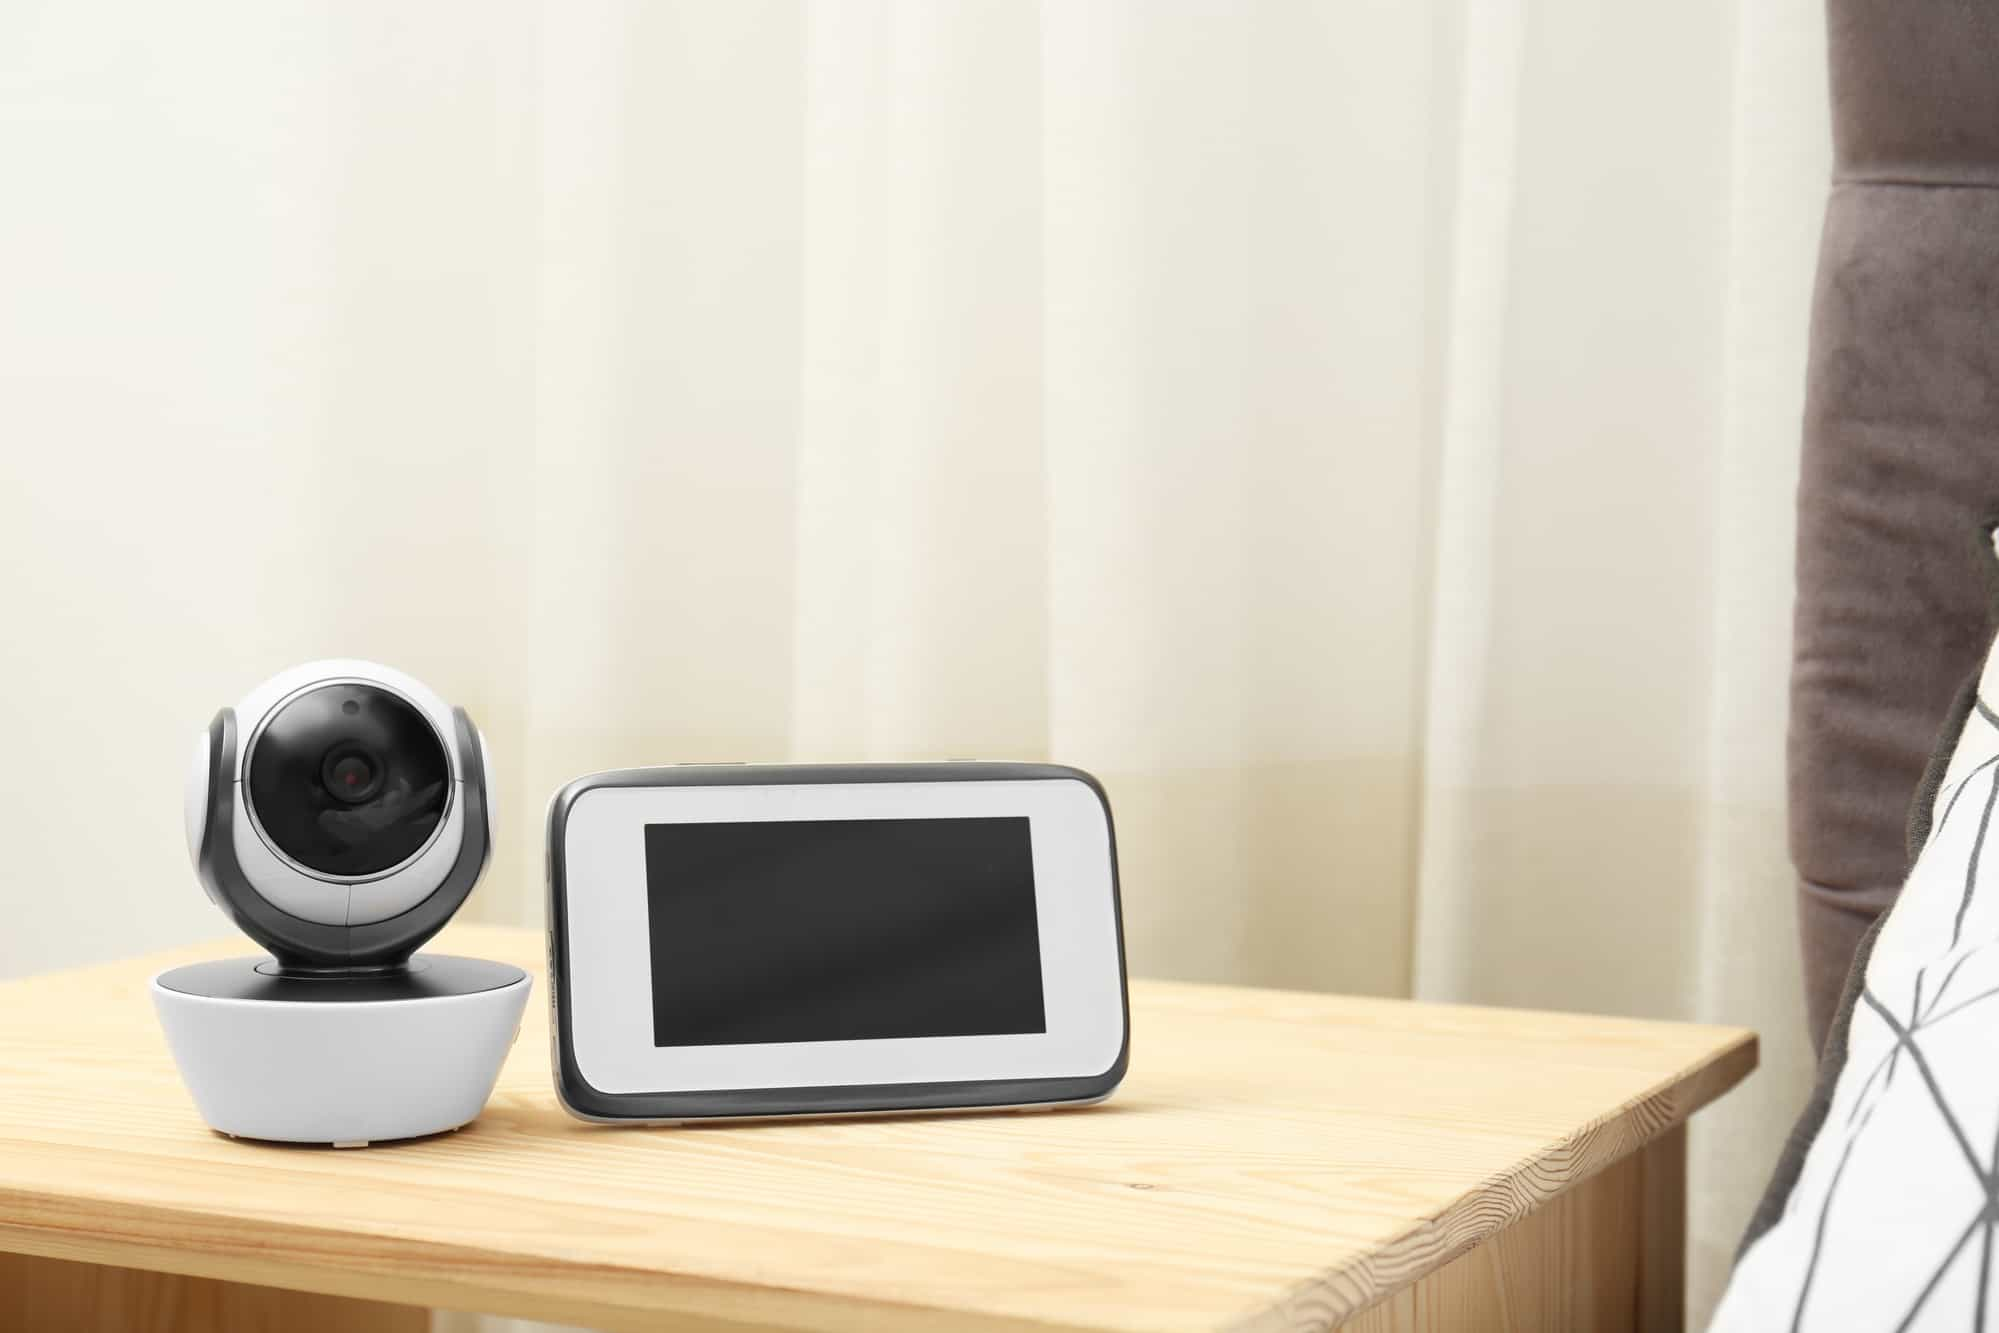 Some Notable Aspects To Consider Before Buying A Baby Monitor